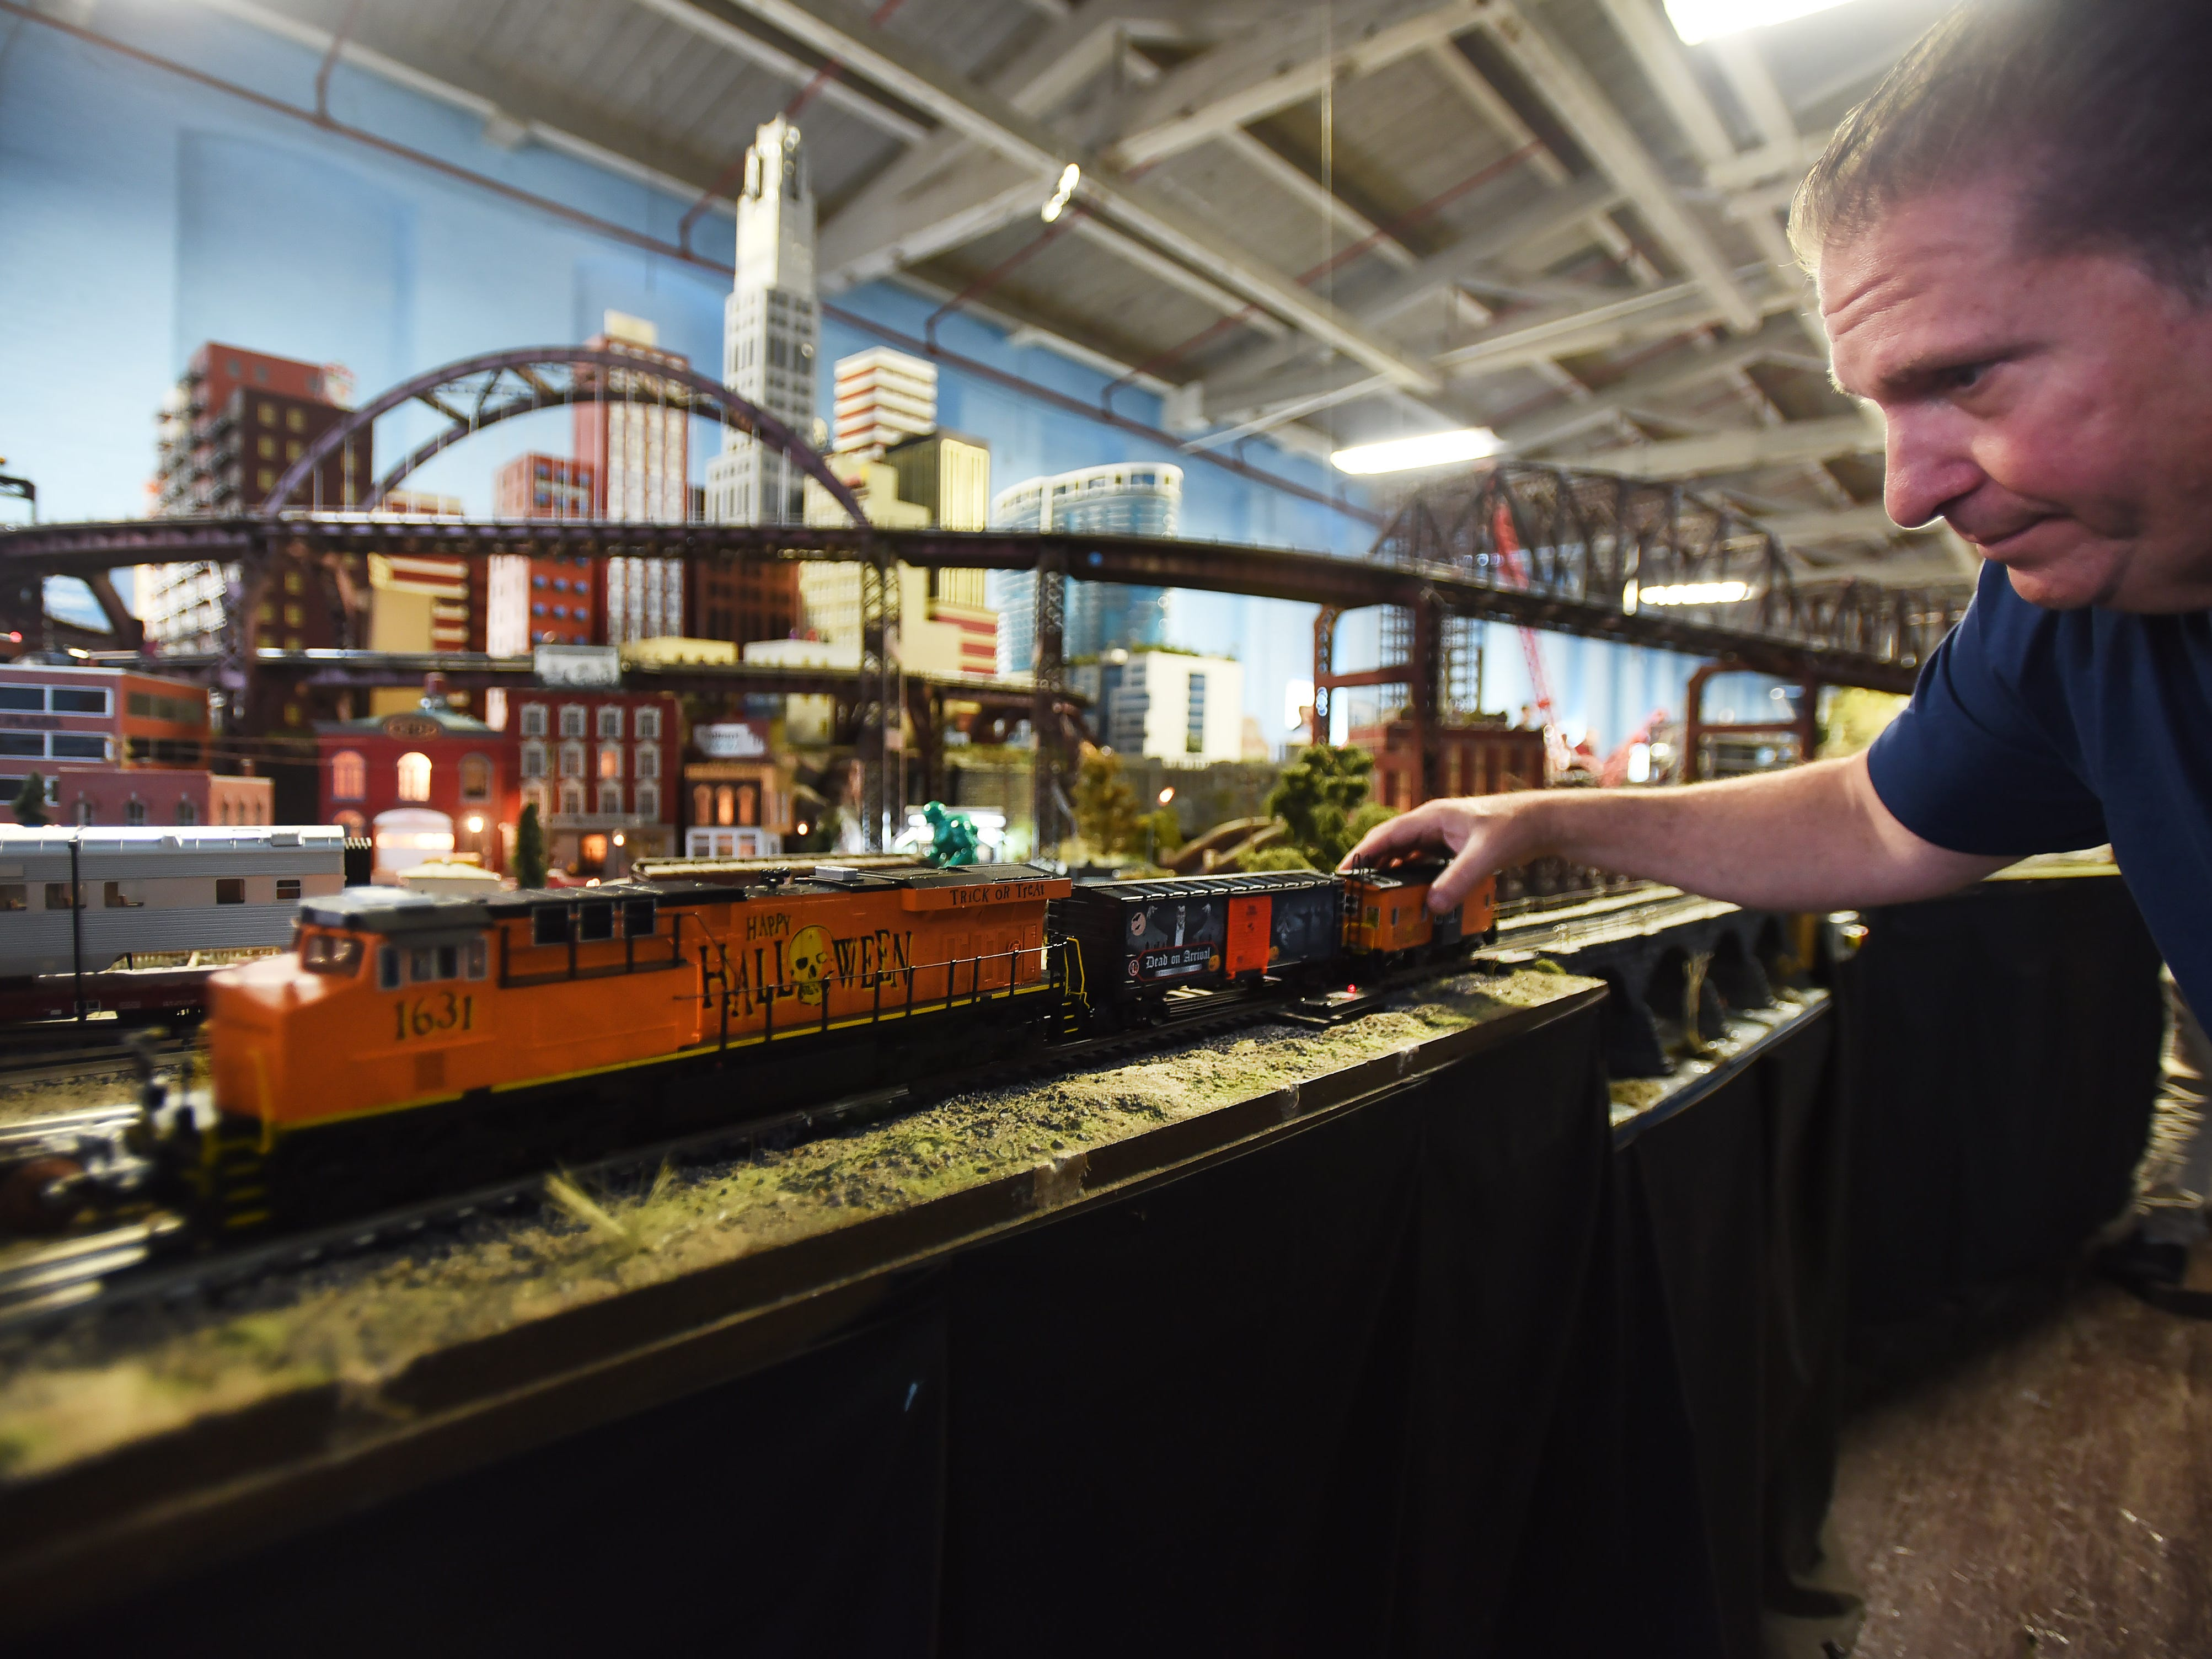 Robert Cafaro, a member of the NJ Hi-Railers Club, shows the Halloween trains during a show for the public at Silk City Station in Paterson on 10/28/18.